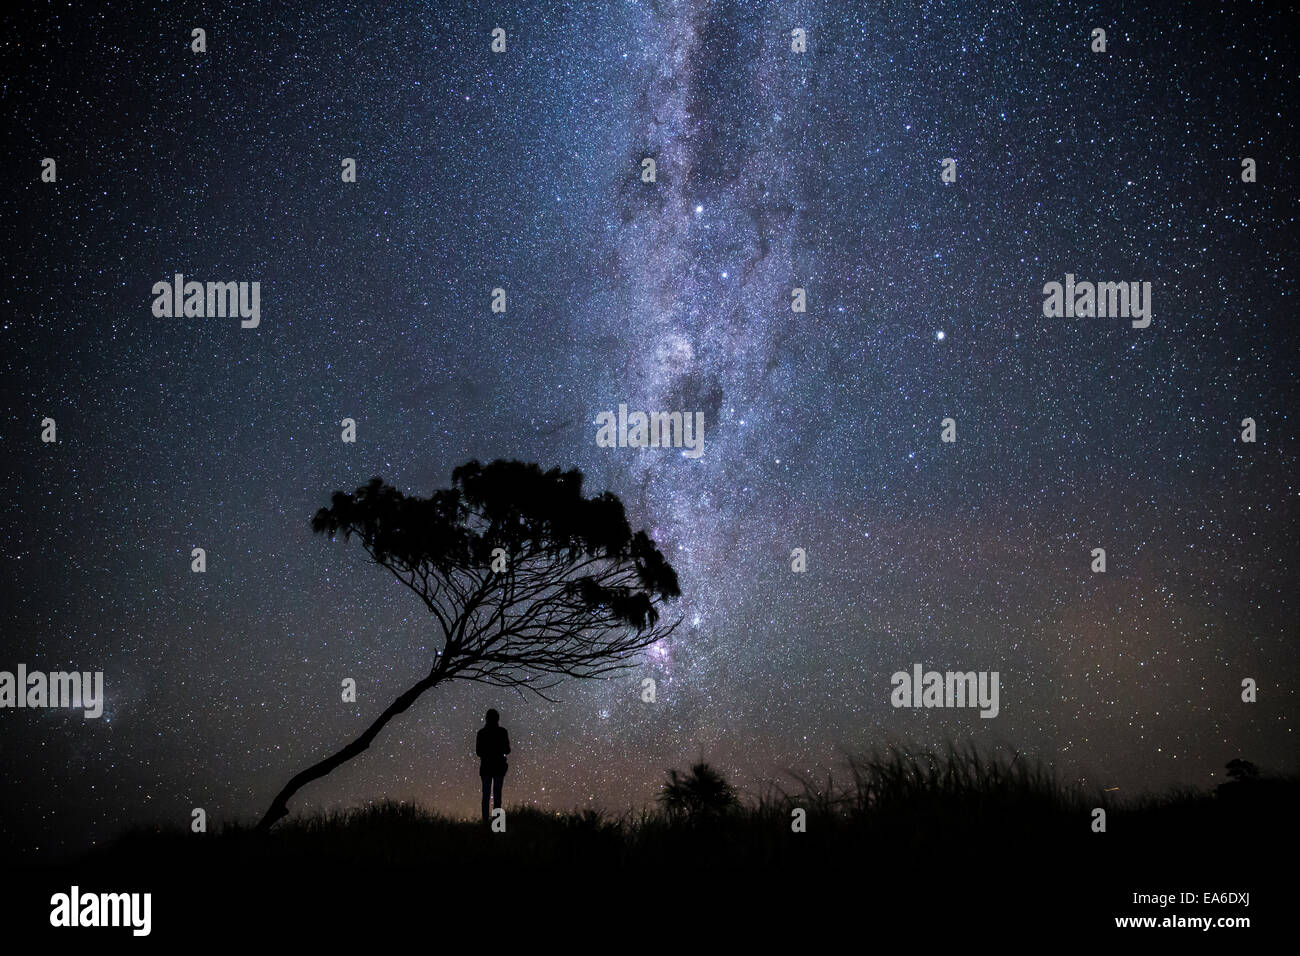 Australia, Yamba, Man standing under stars at night Stock Photo